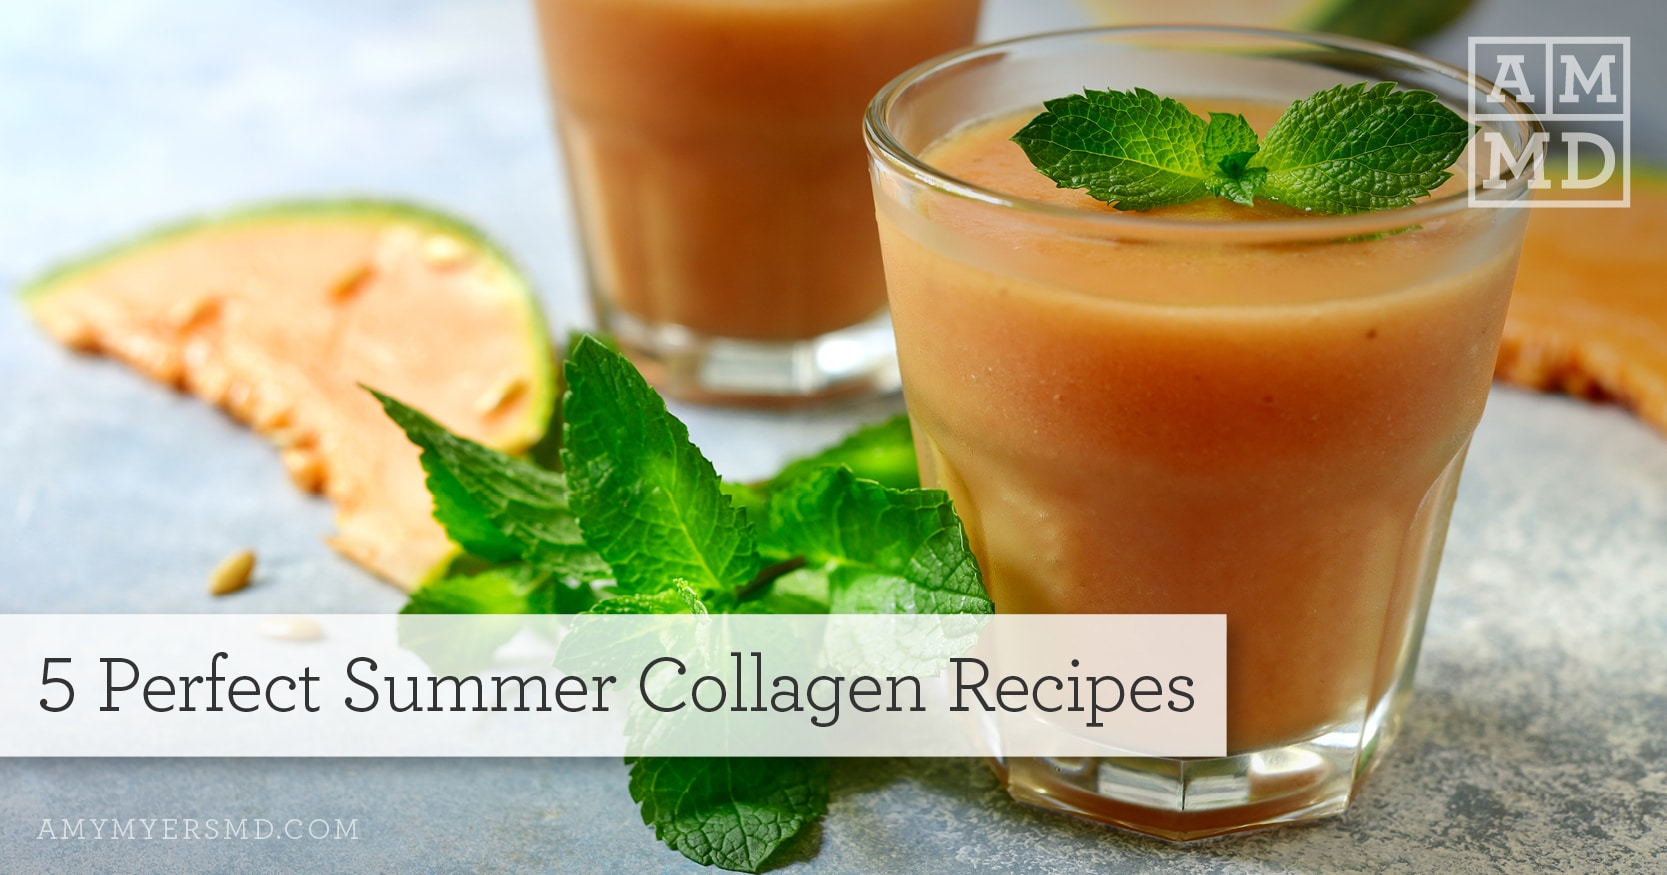 5 Perfect Summer Collagen Protein Recipes - Cantaloupe Drink - Featured Image - Amy Myers MD